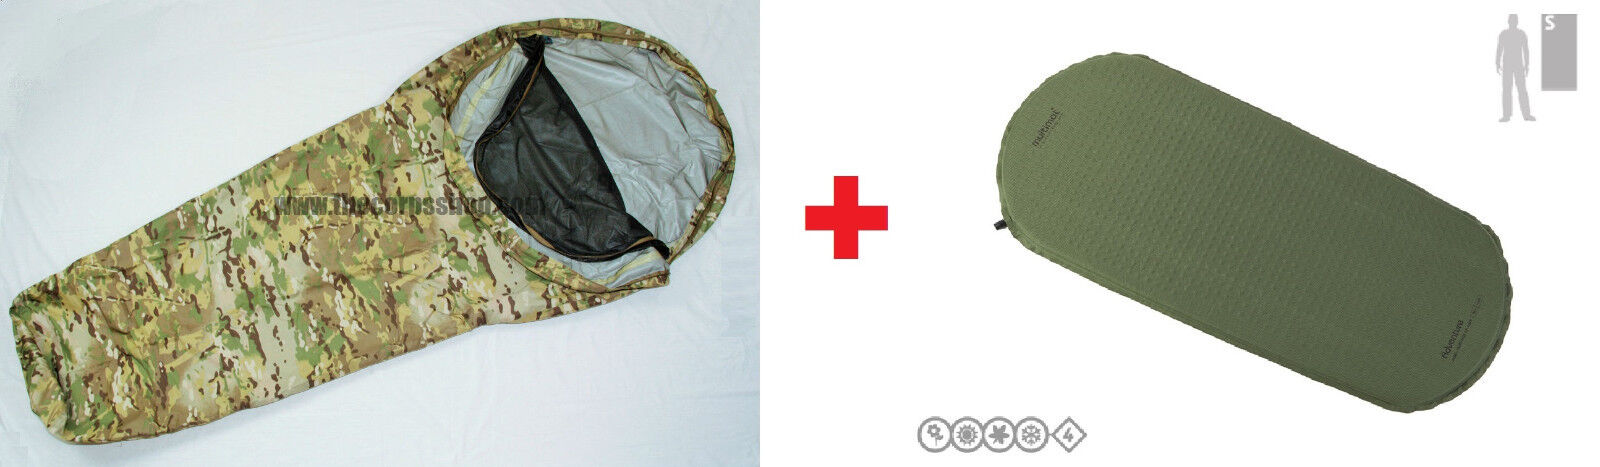 MULTICAM TACTICAL BIVY BAG SHELTER  + MULTIMAT SELF INFLATING SLEEPING MAT COMBO  authentic quality